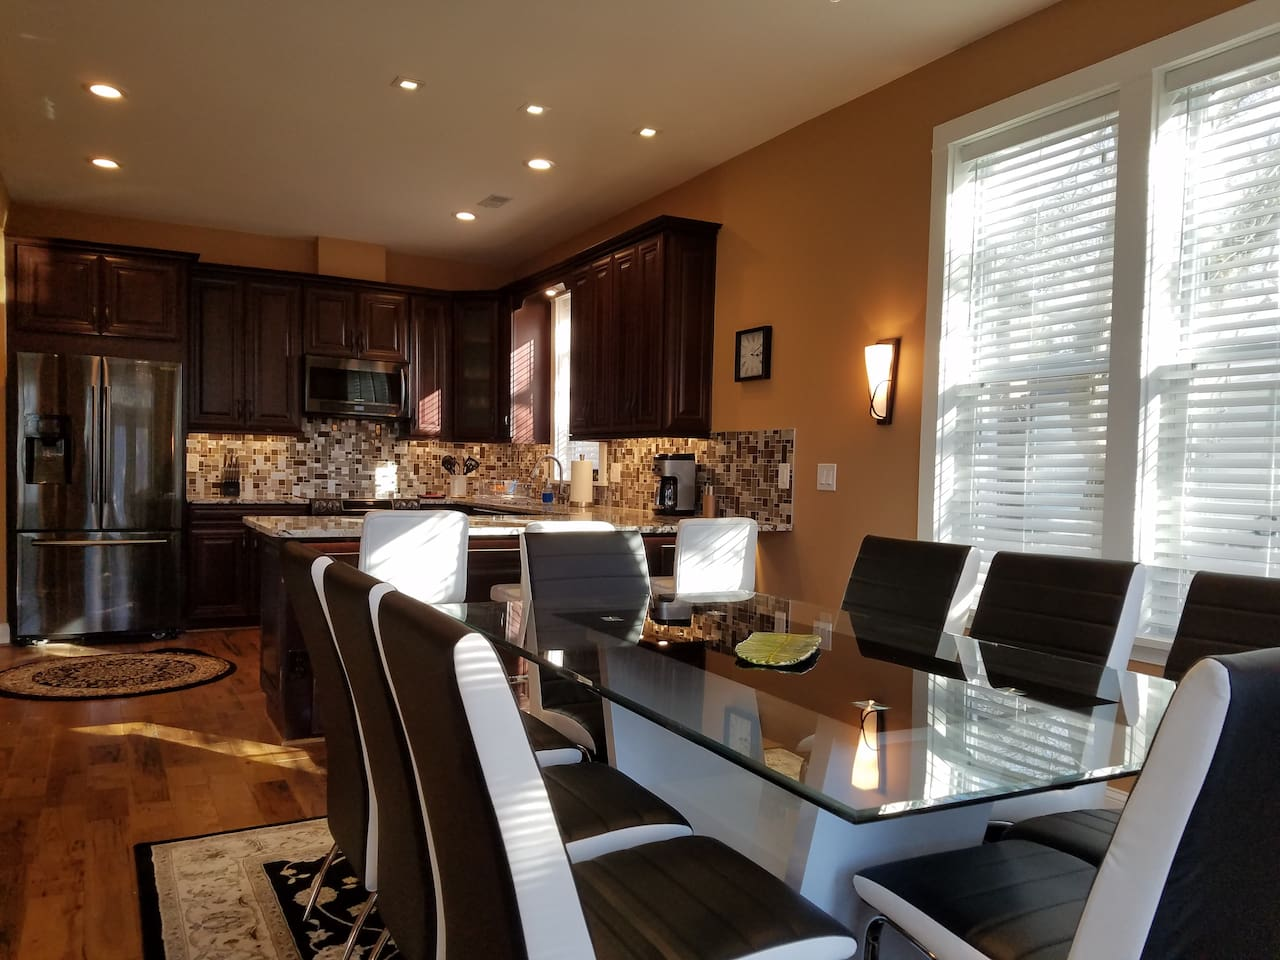 New construction, upscale amenities, breakfast bar and dining area.